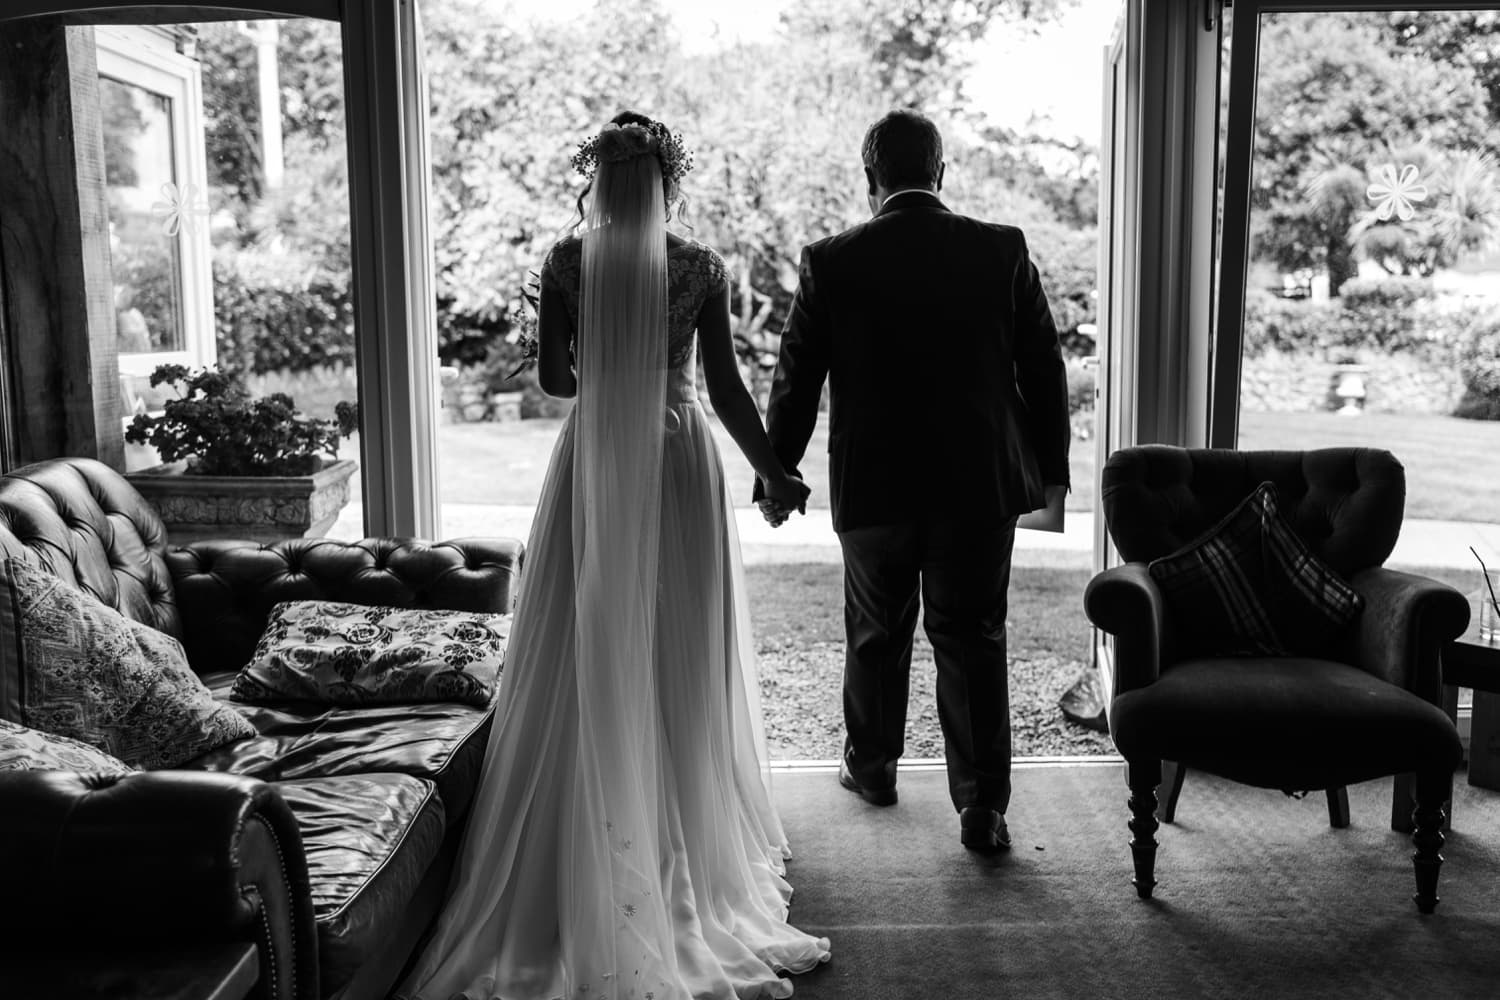 back view of bride and groom through doorway